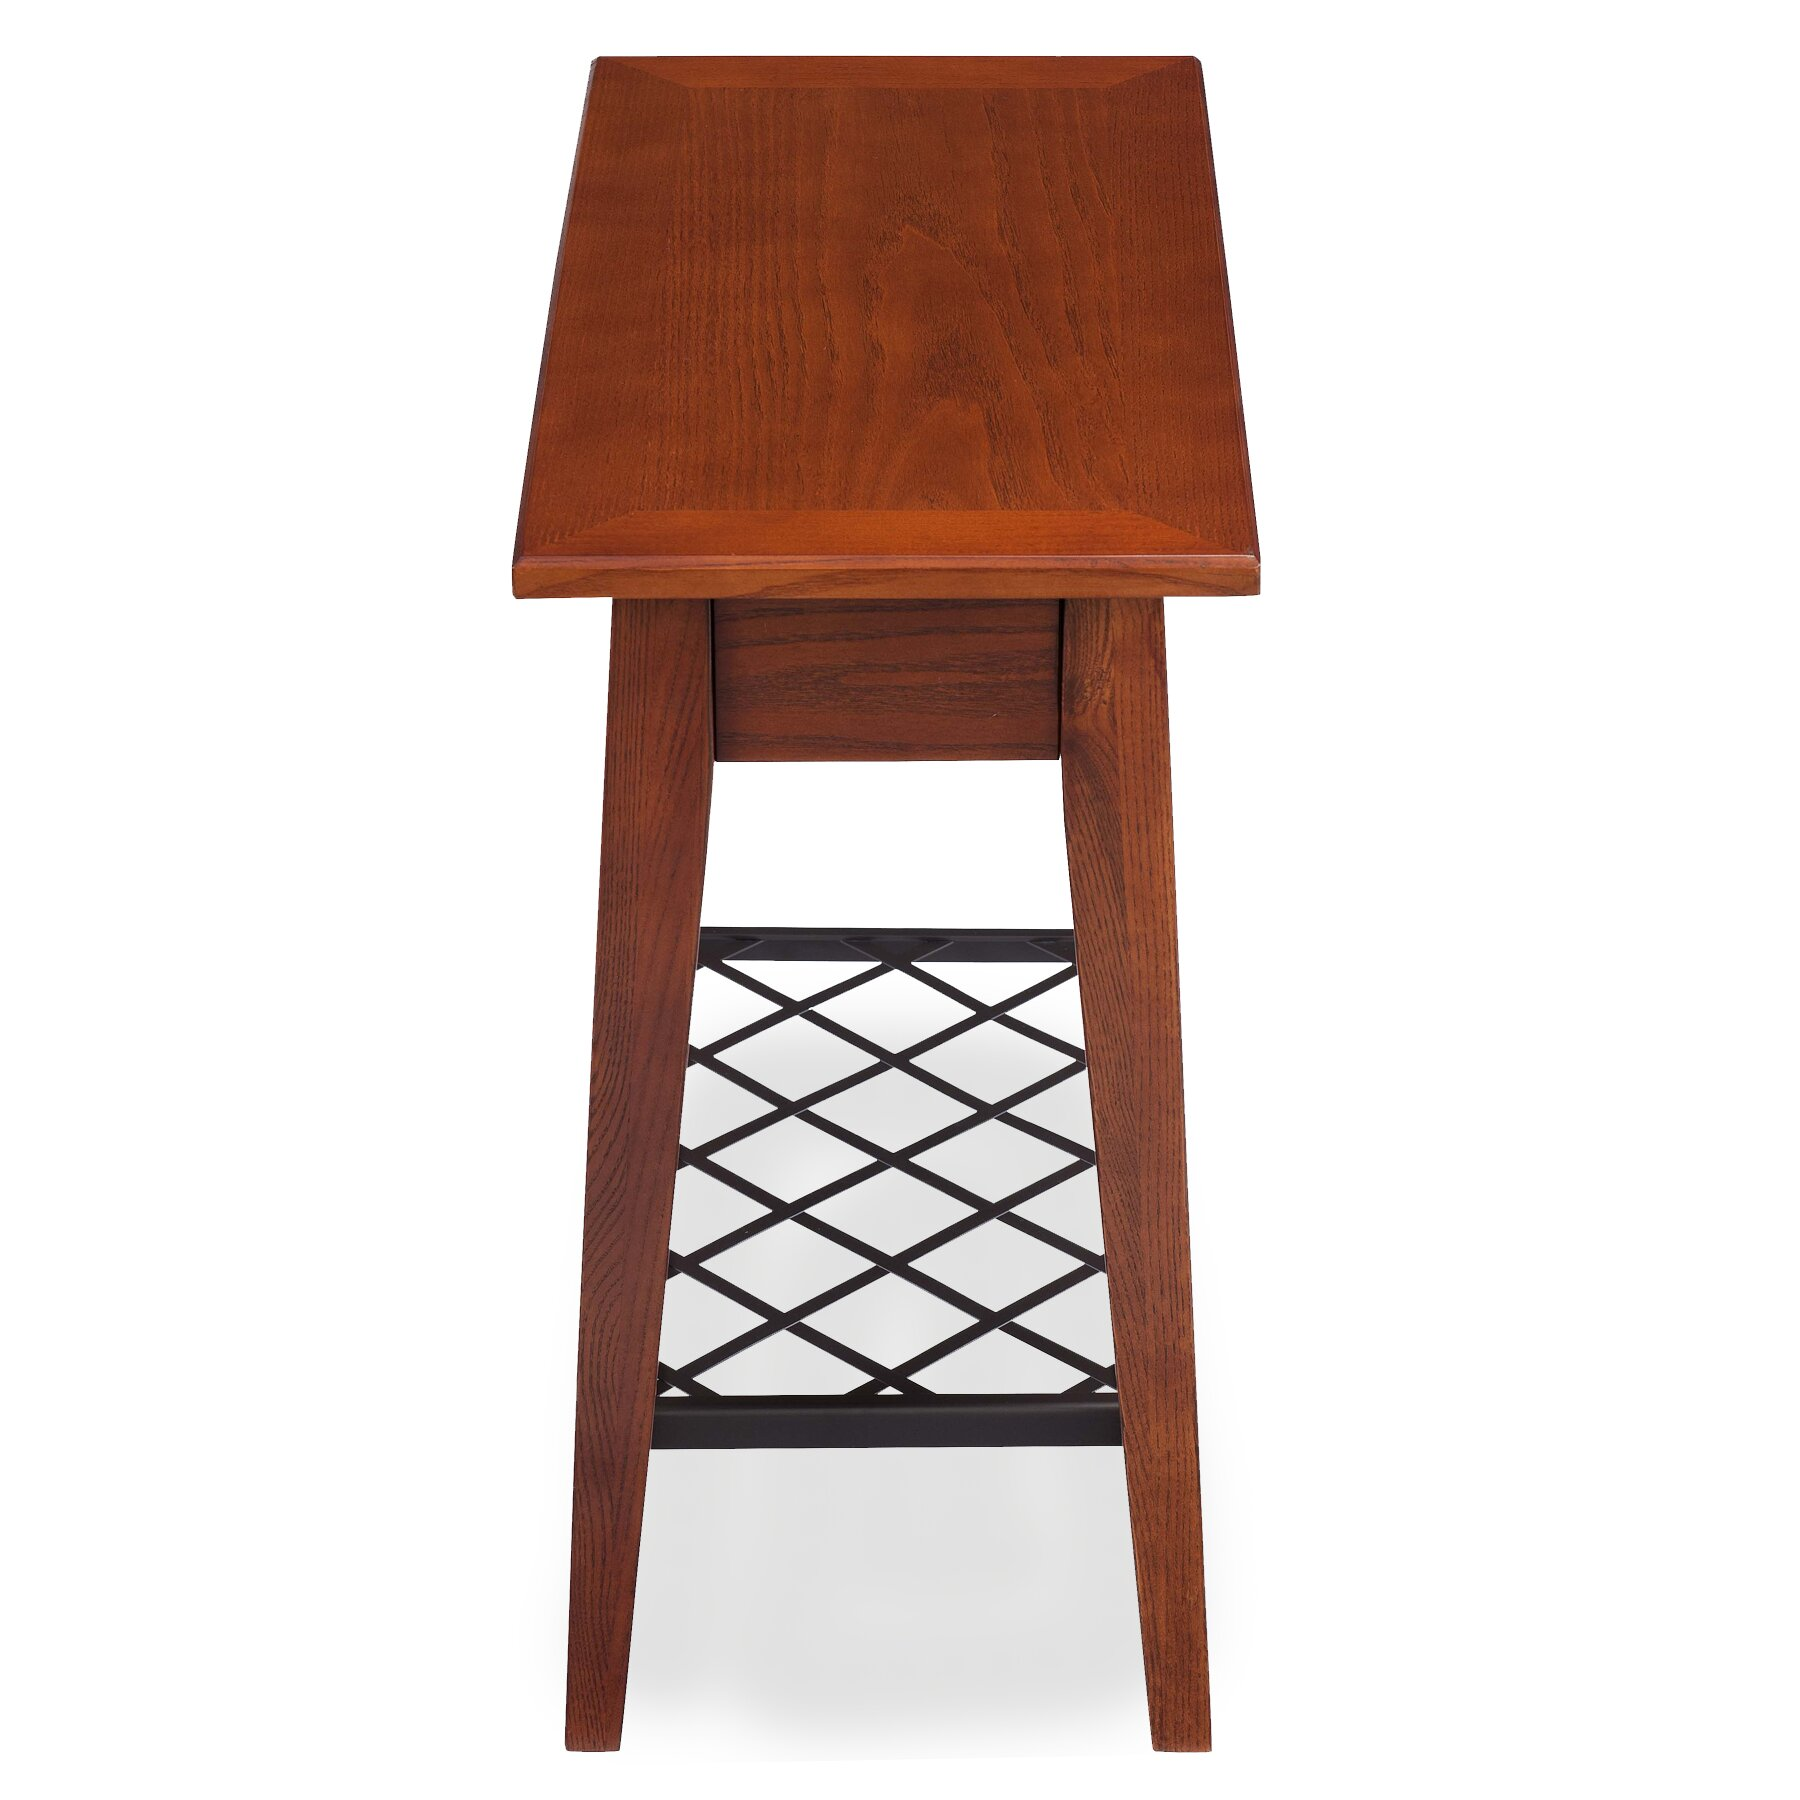 Leick latisse chairside table reviews wayfair for Chairside table